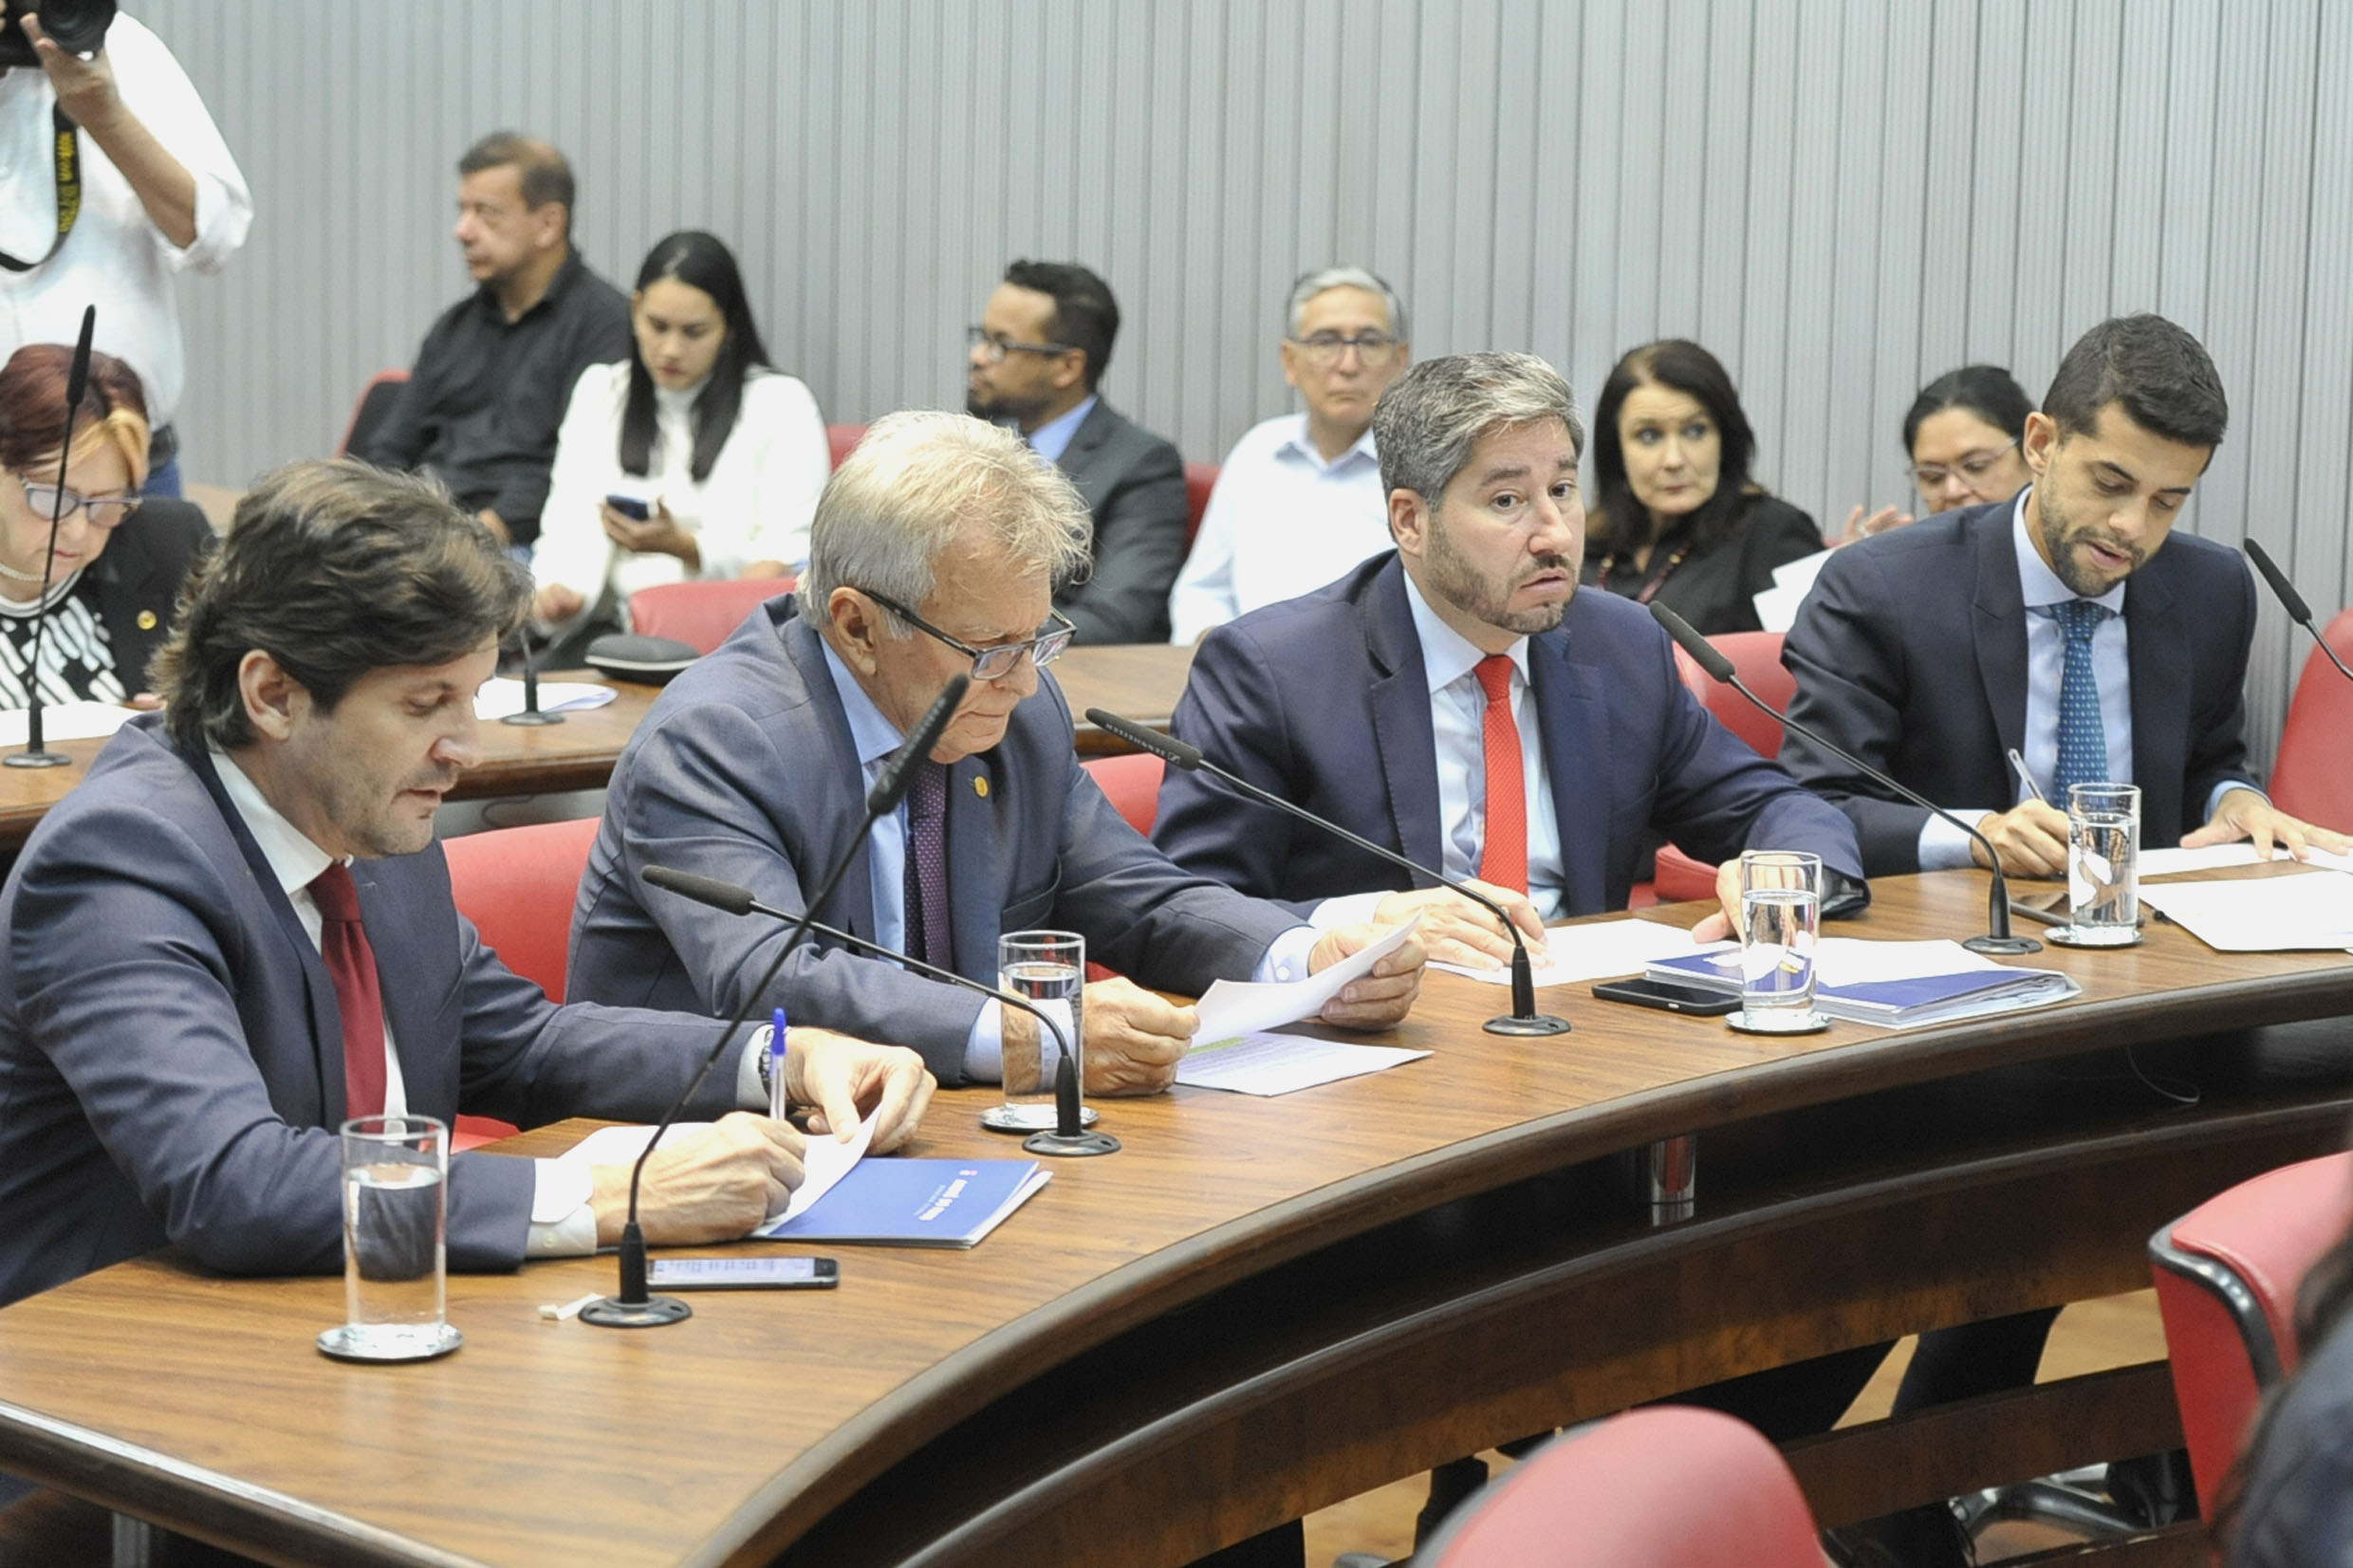 Parlamentares na comissão<a style='float:right' href='https://www3.al.sp.gov.br/repositorio/noticia/N-05-2019/fg234440.jpg' target=_blank><img src='/_img/material-file-download-white.png' width='14px' alt='Clique para baixar a imagem'></a>